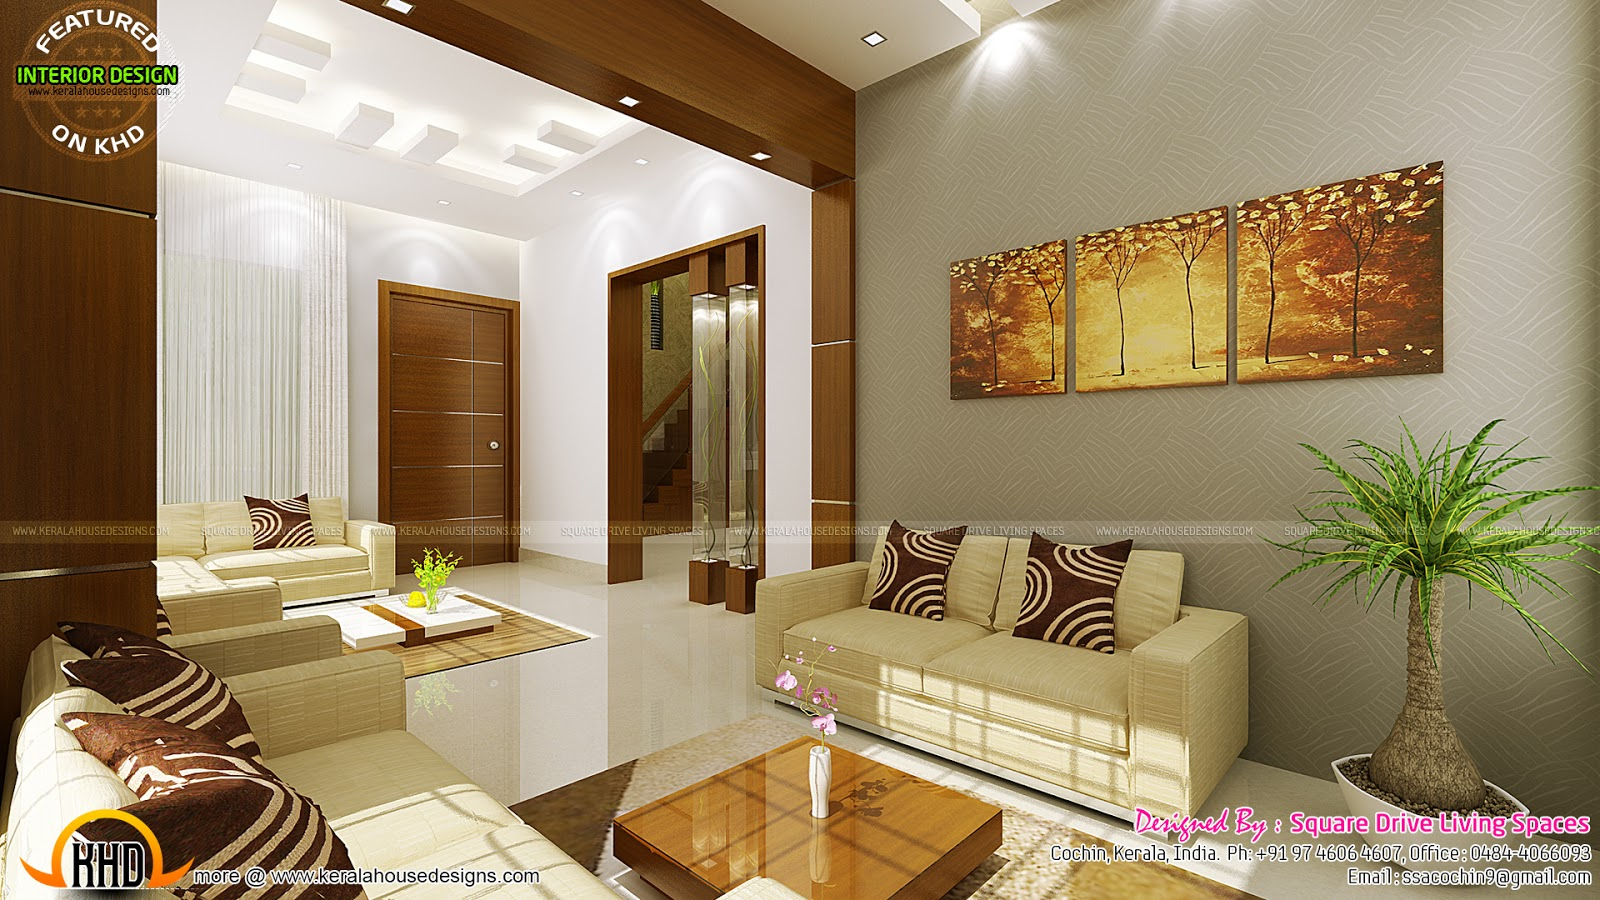 Contemporary kitchen dining and living room kerala home House design inside